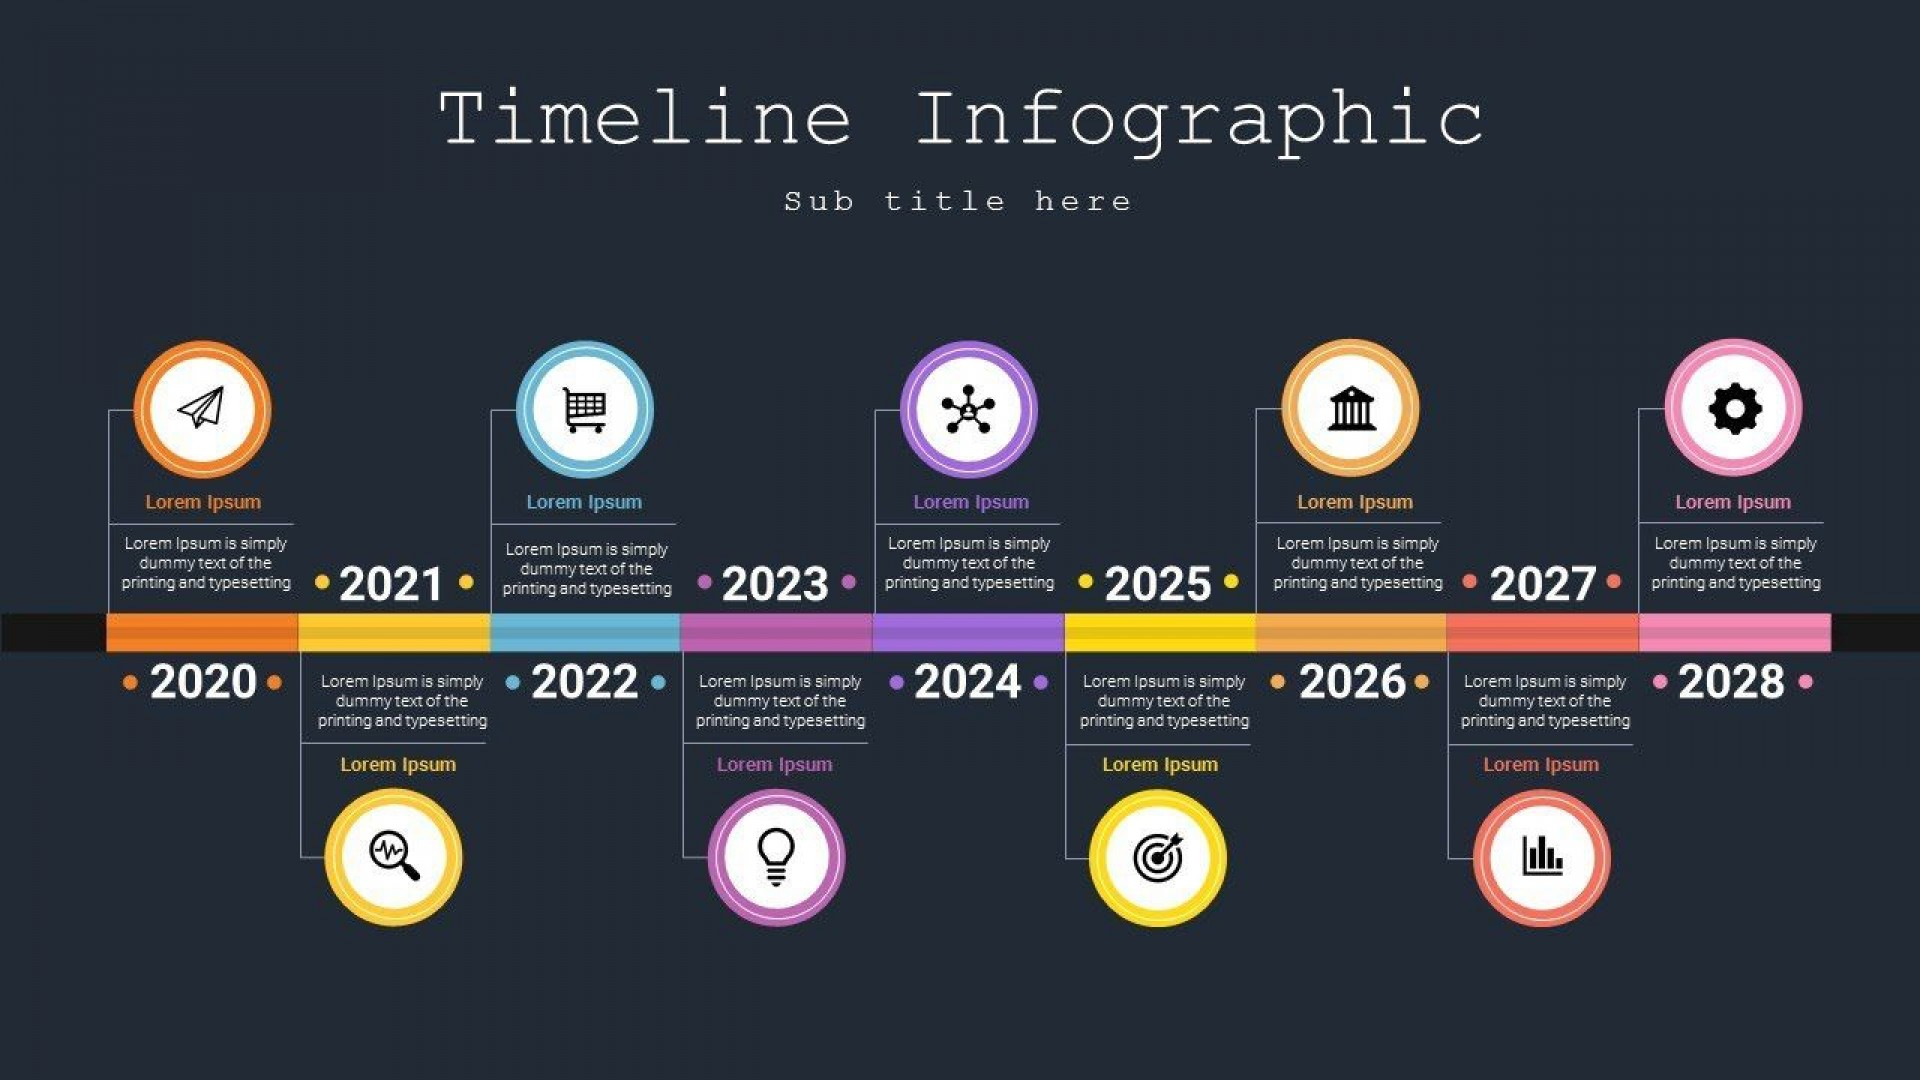 006 Striking Timeline Template Powerpoint Free Download Image  Project Ppt Animated1920